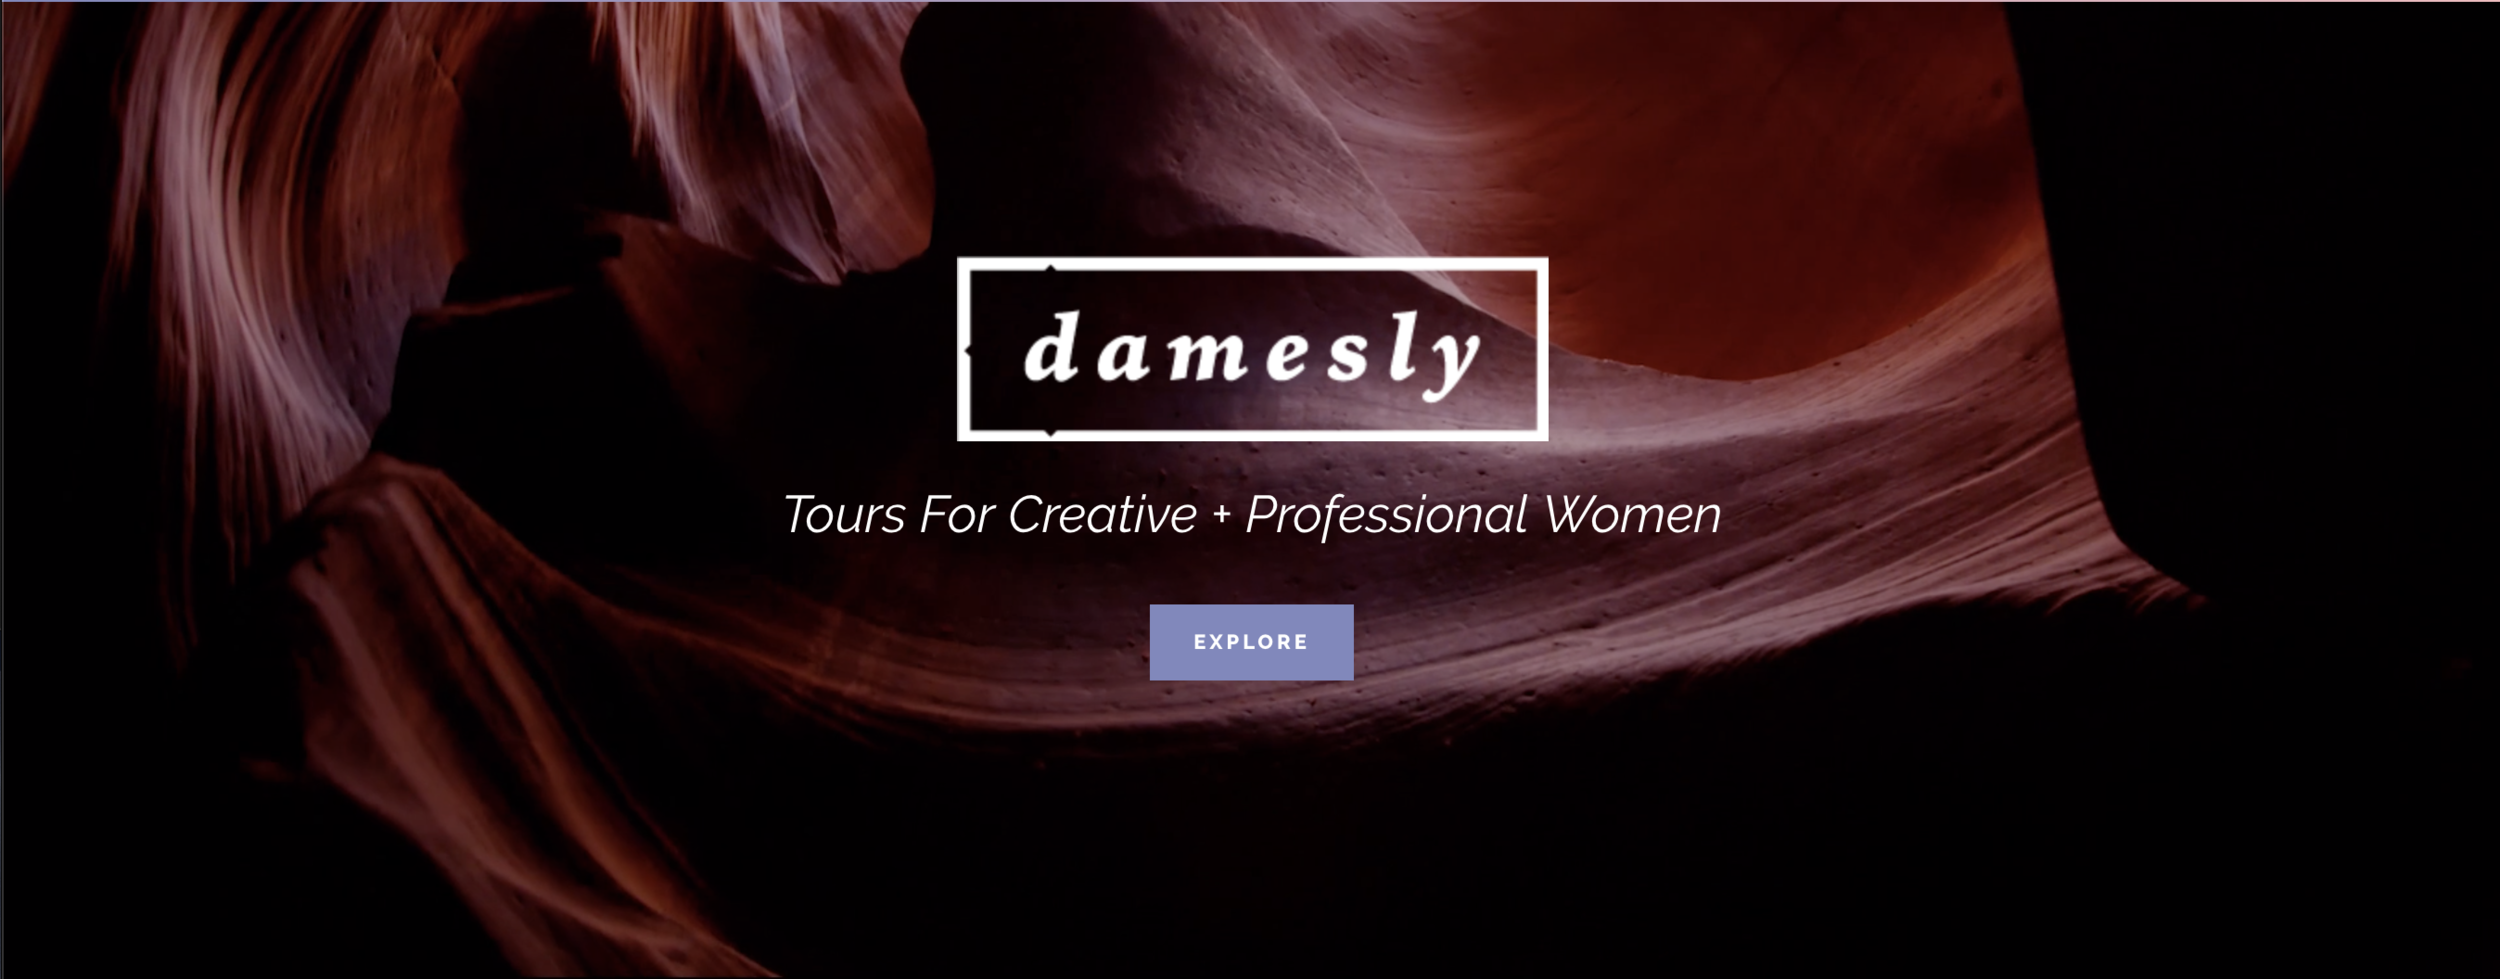 Bryn leads a photography workshop to the Grand Canyon and Antelope Canyon with Damesly - a travel agency for women.